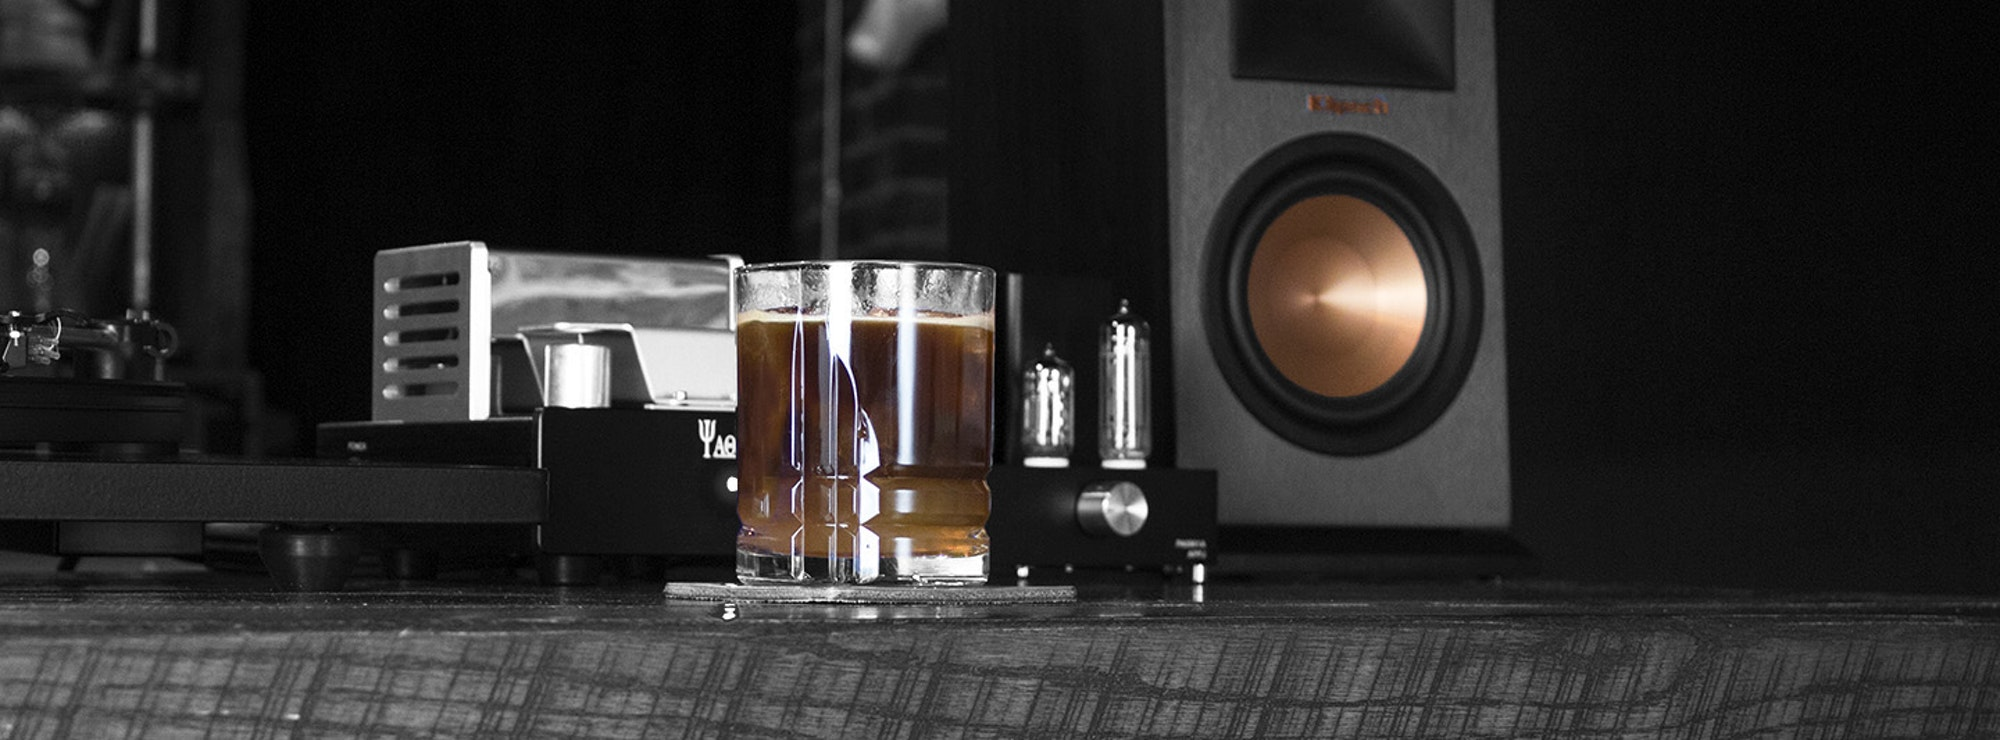 Klipsch bookshelf speaker and U-Turn turntable near a bar